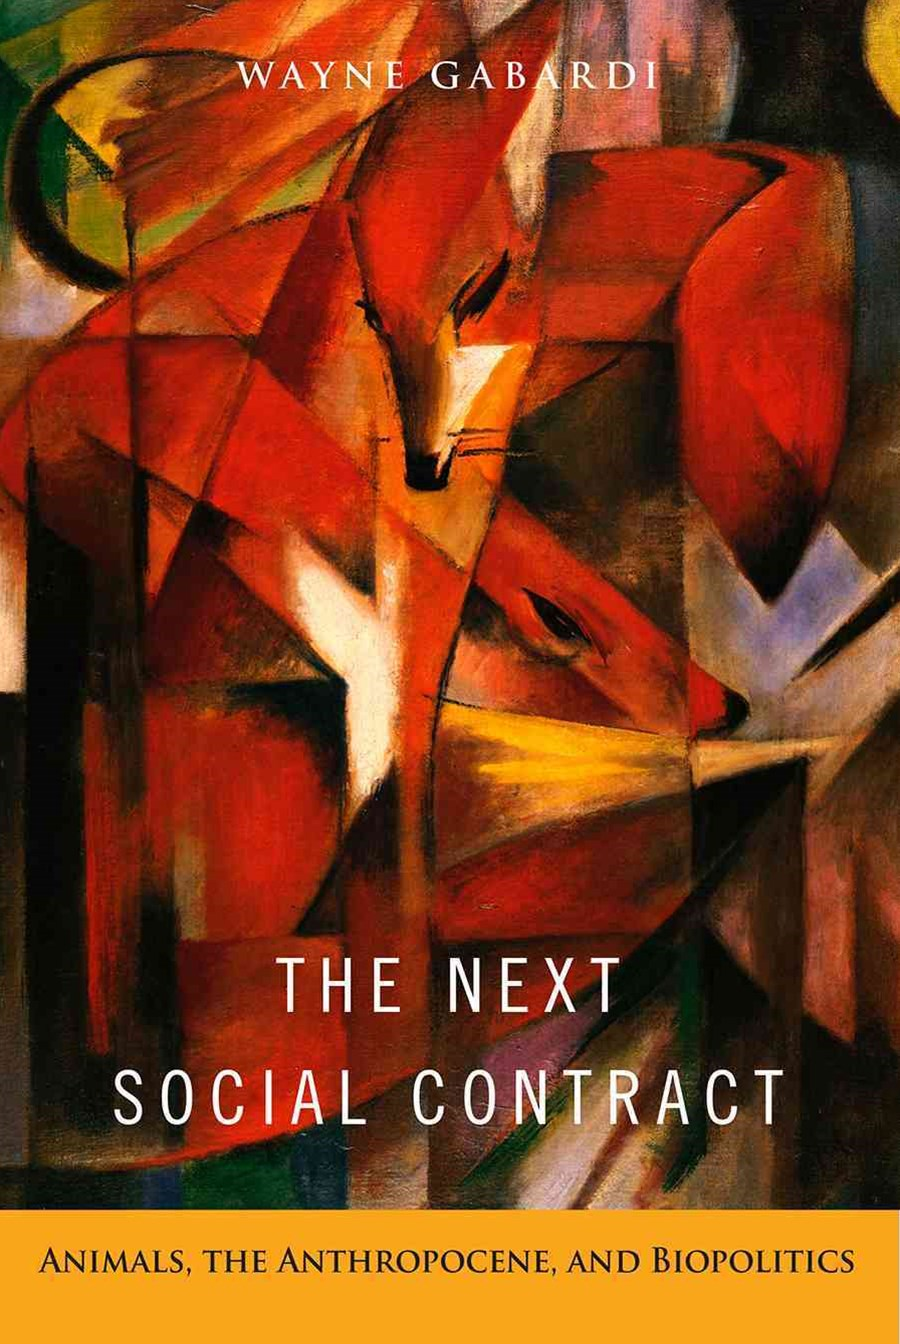 The Next Social Contract